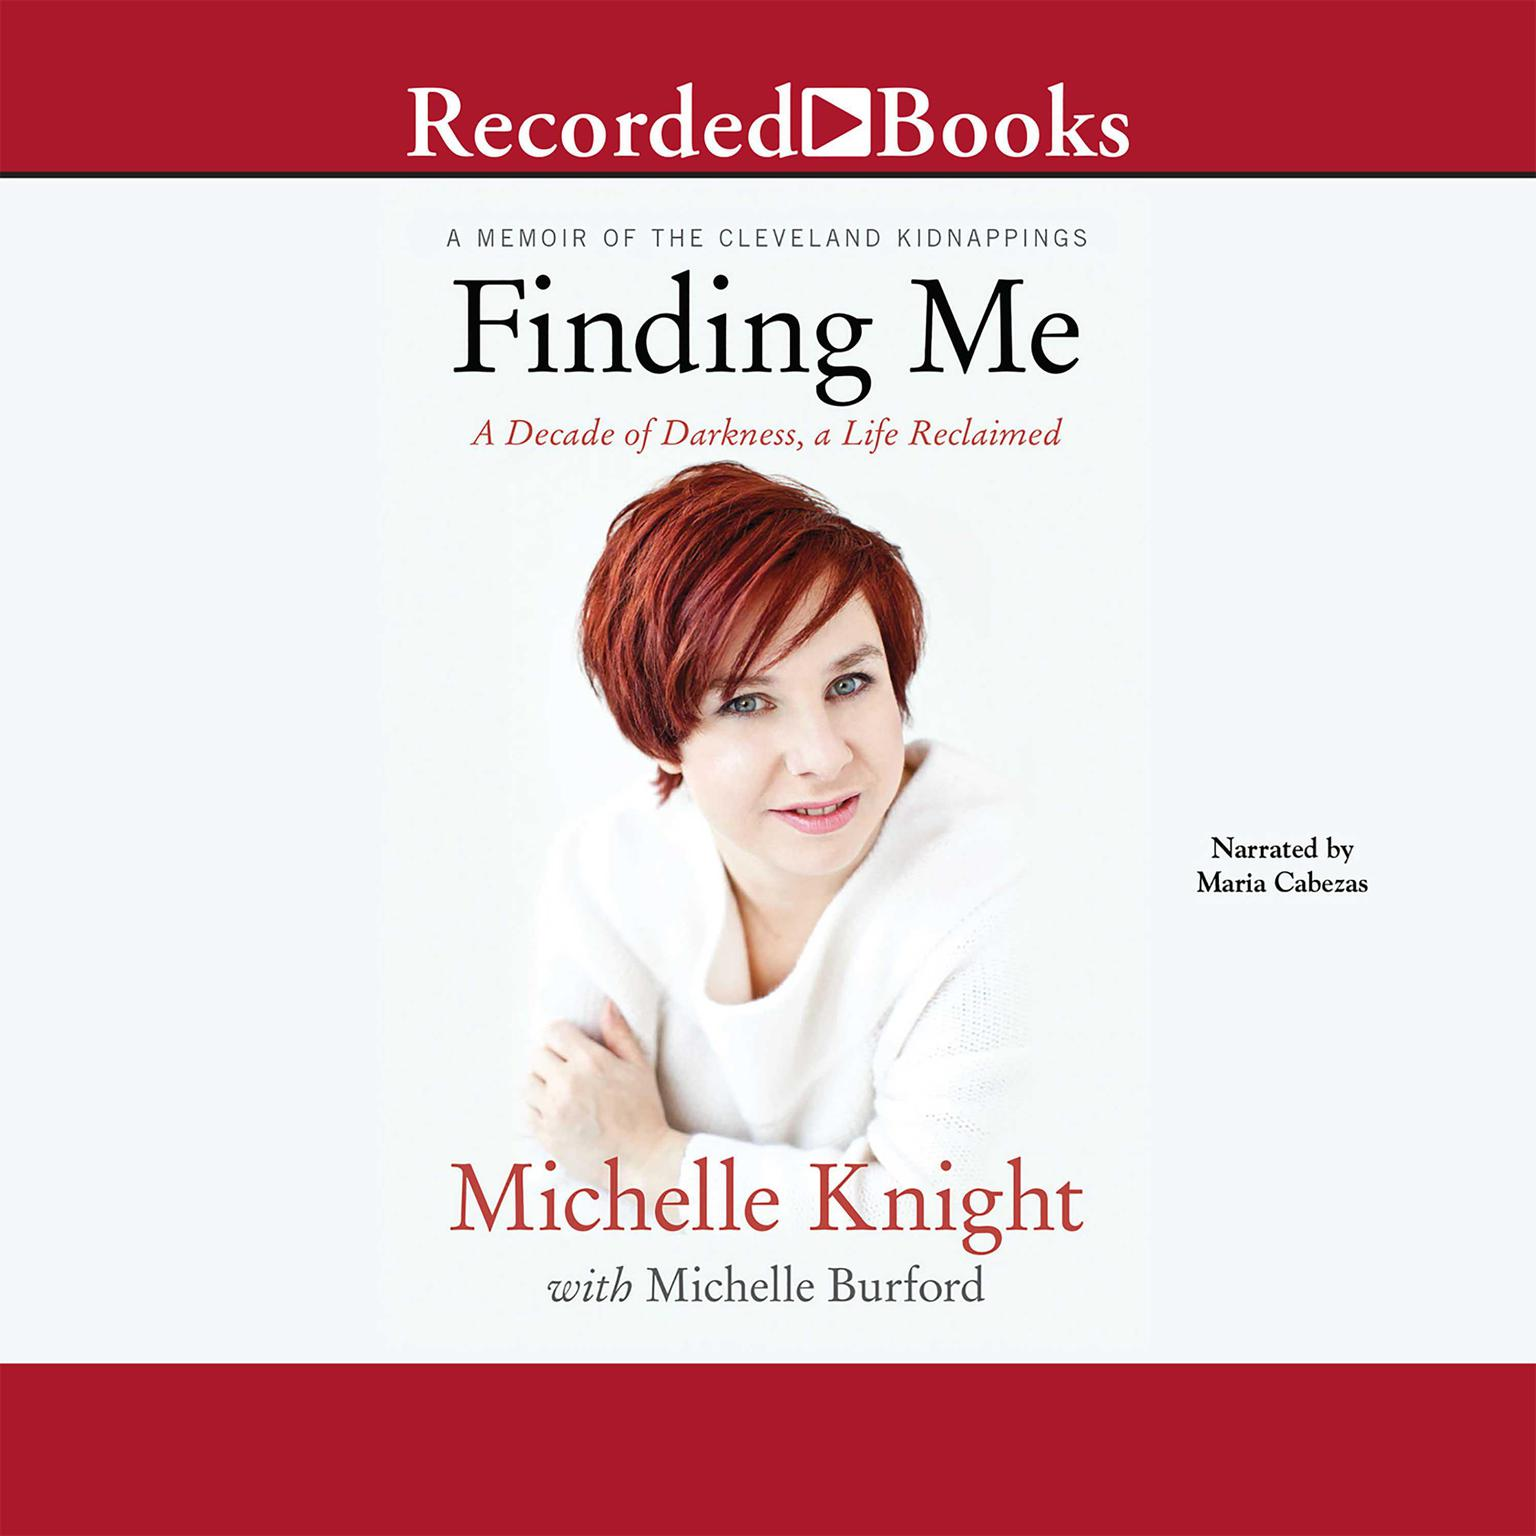 Printable Finding Me: A Decade of Darkness, a Life Reclaimed: A Memoir of the Cleveland Kidnappings Audiobook Cover Art